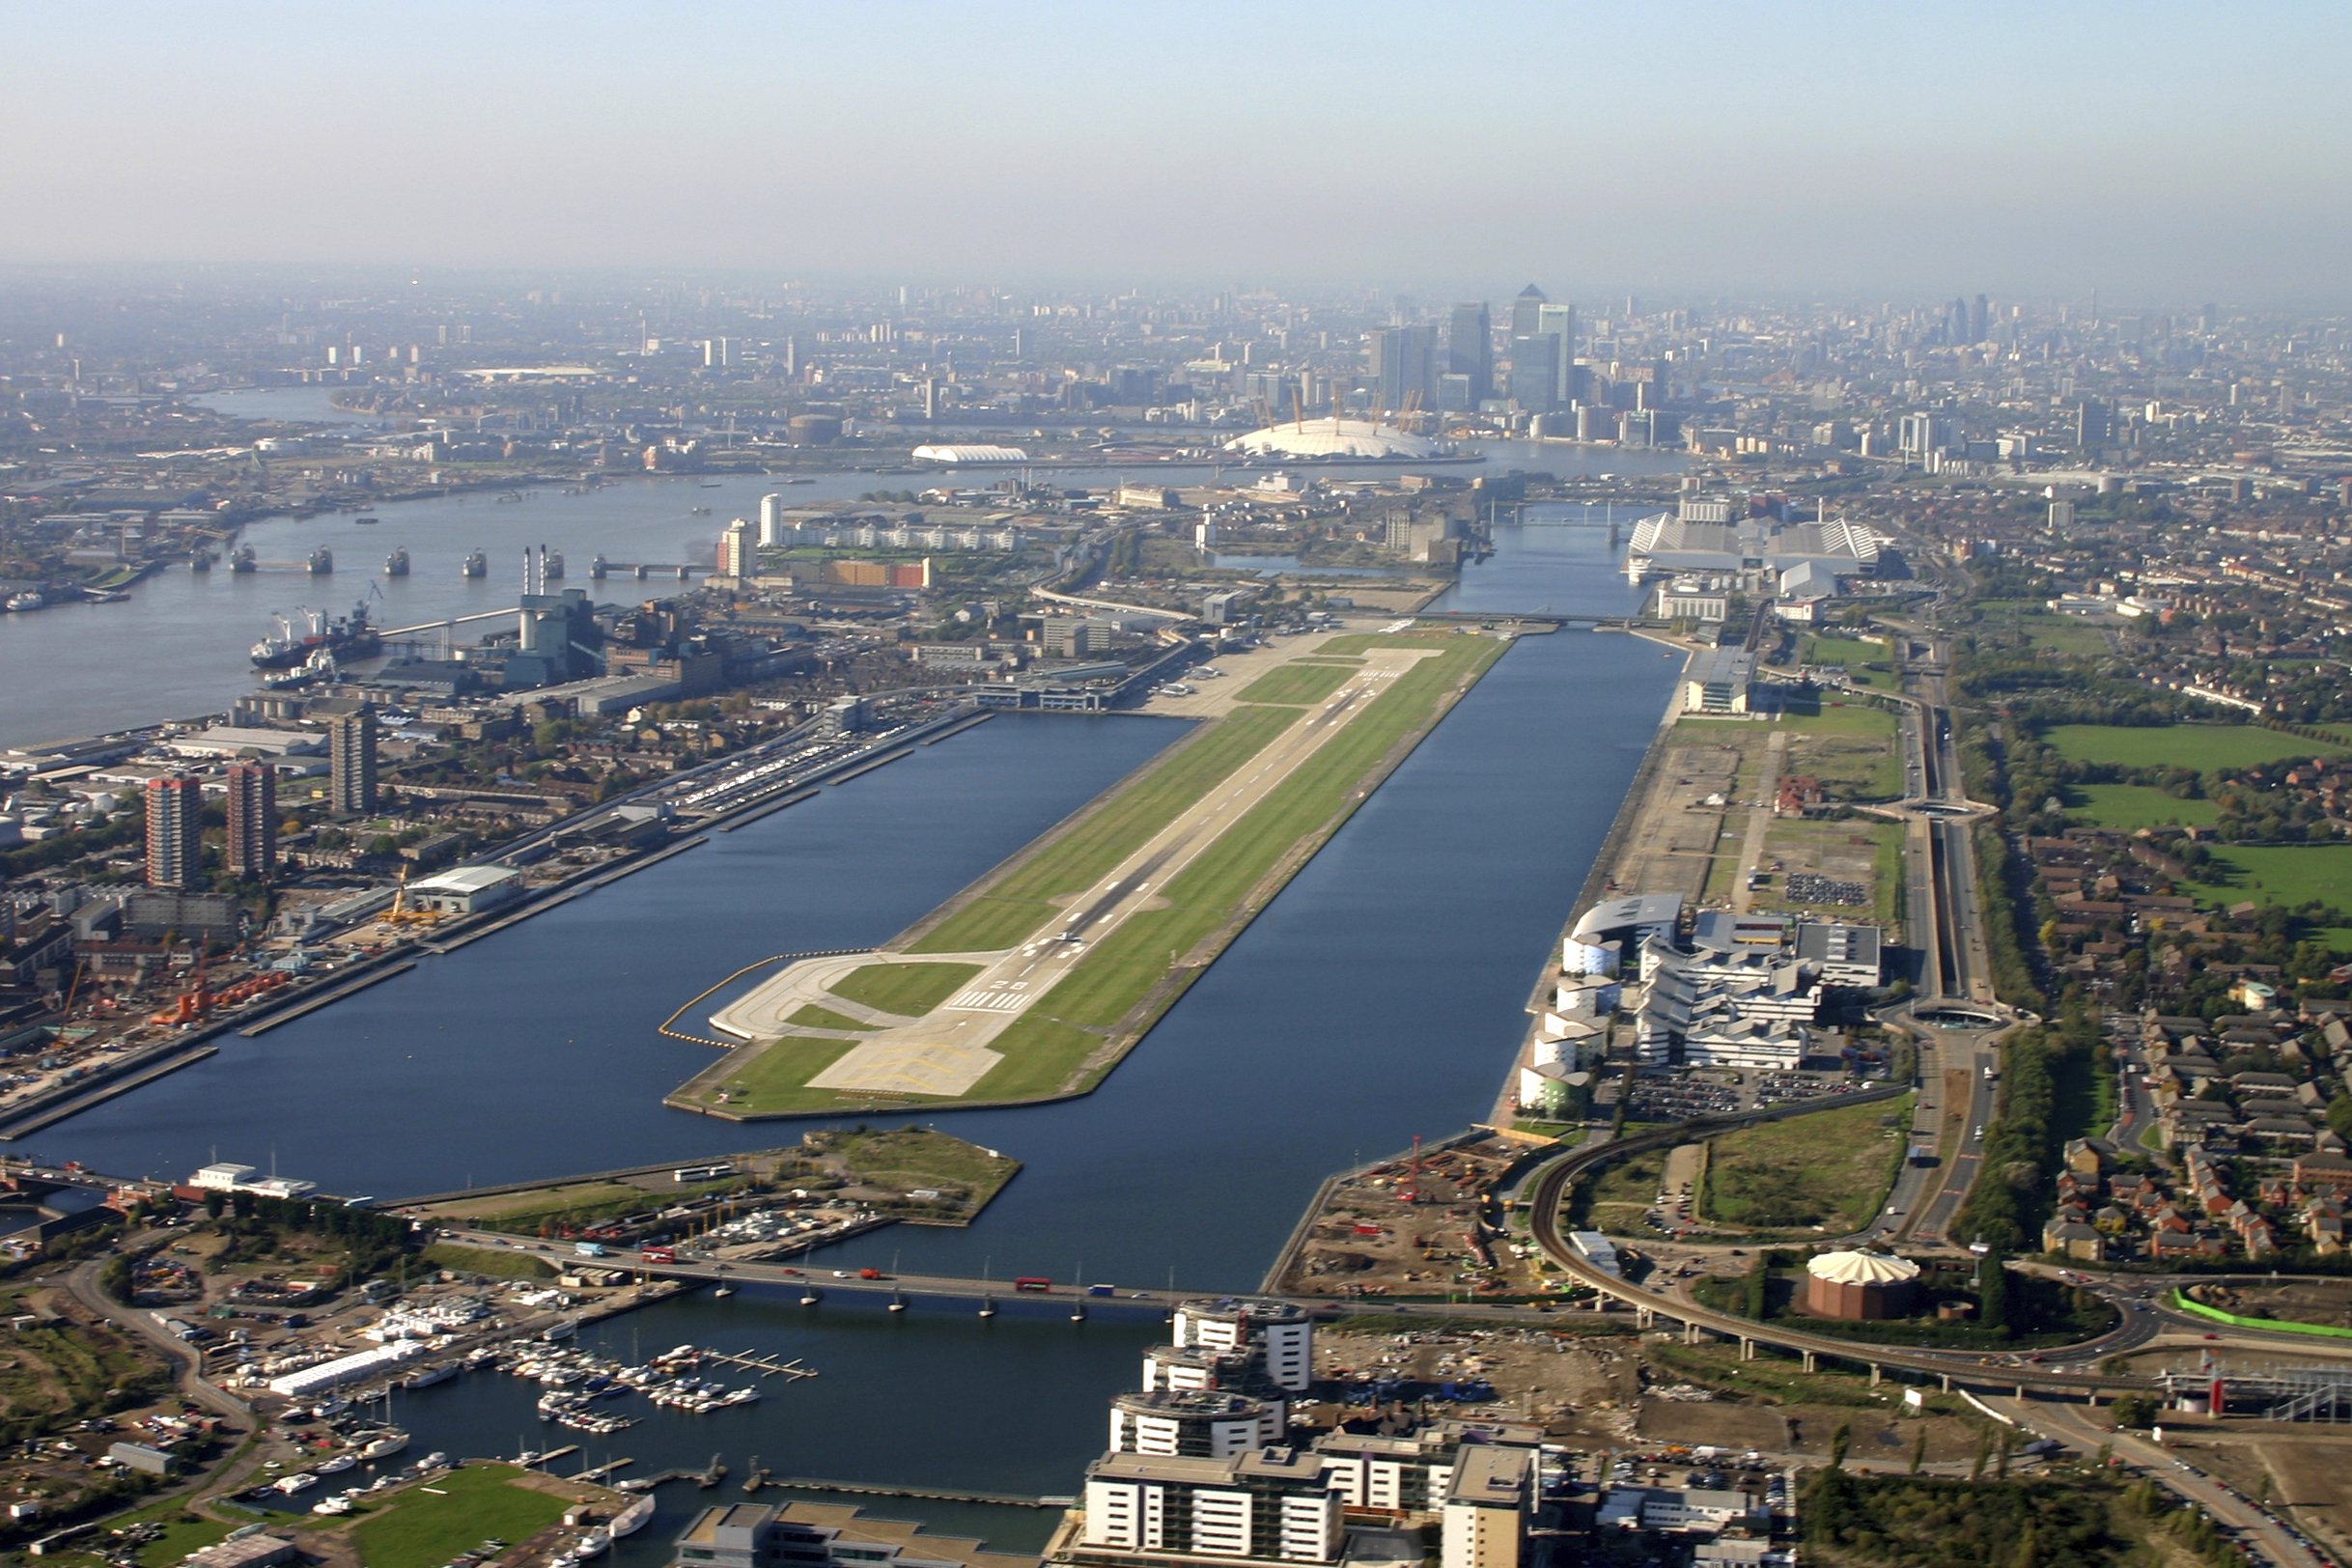 9. London City Airport, Royaume Uni